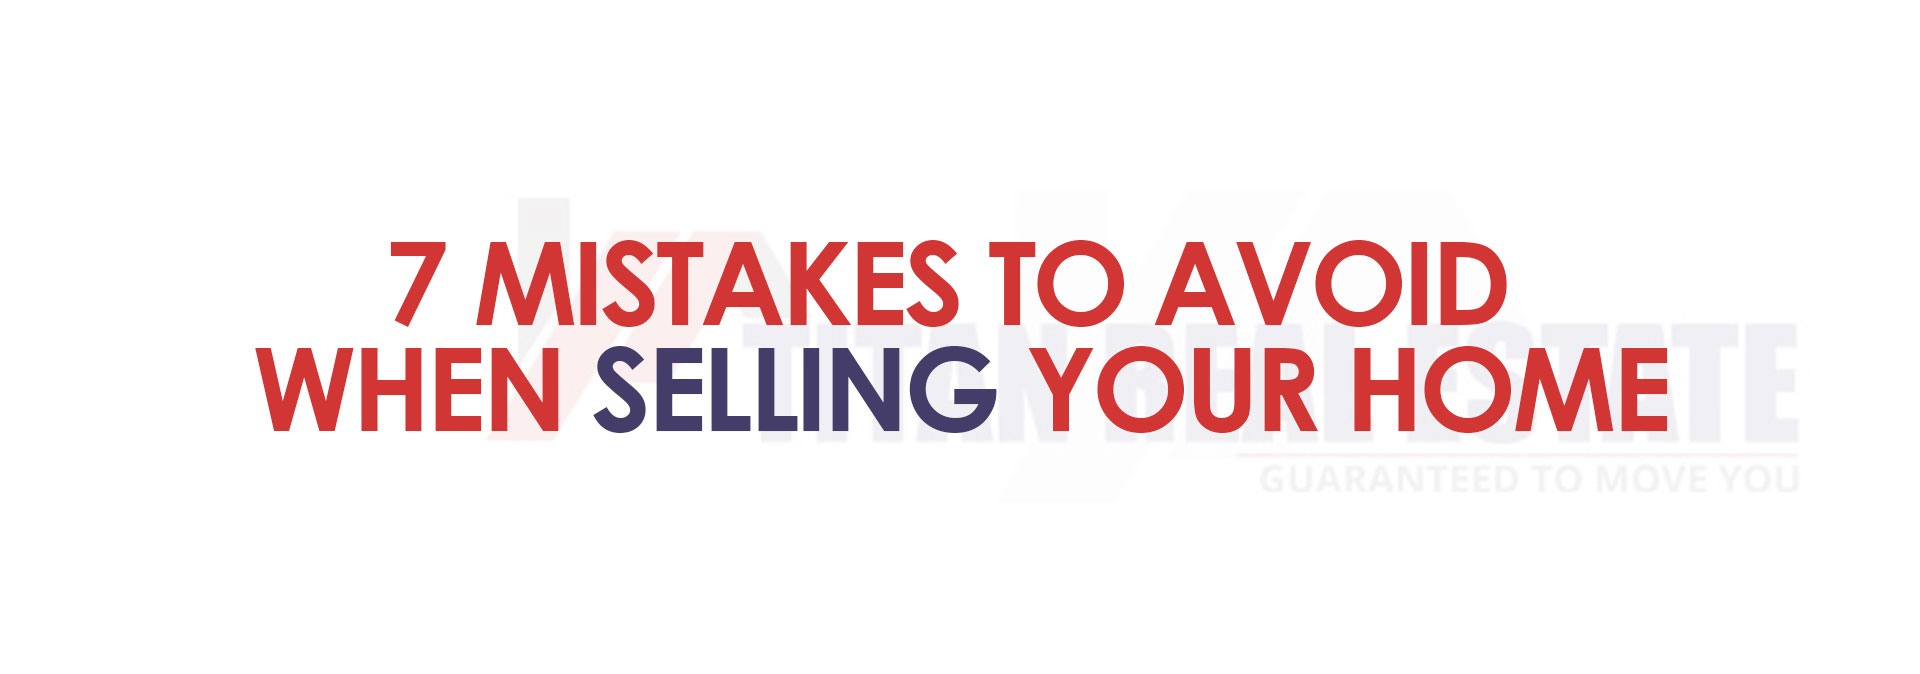 7-mistakes-to-avoid-when-selling-your-home